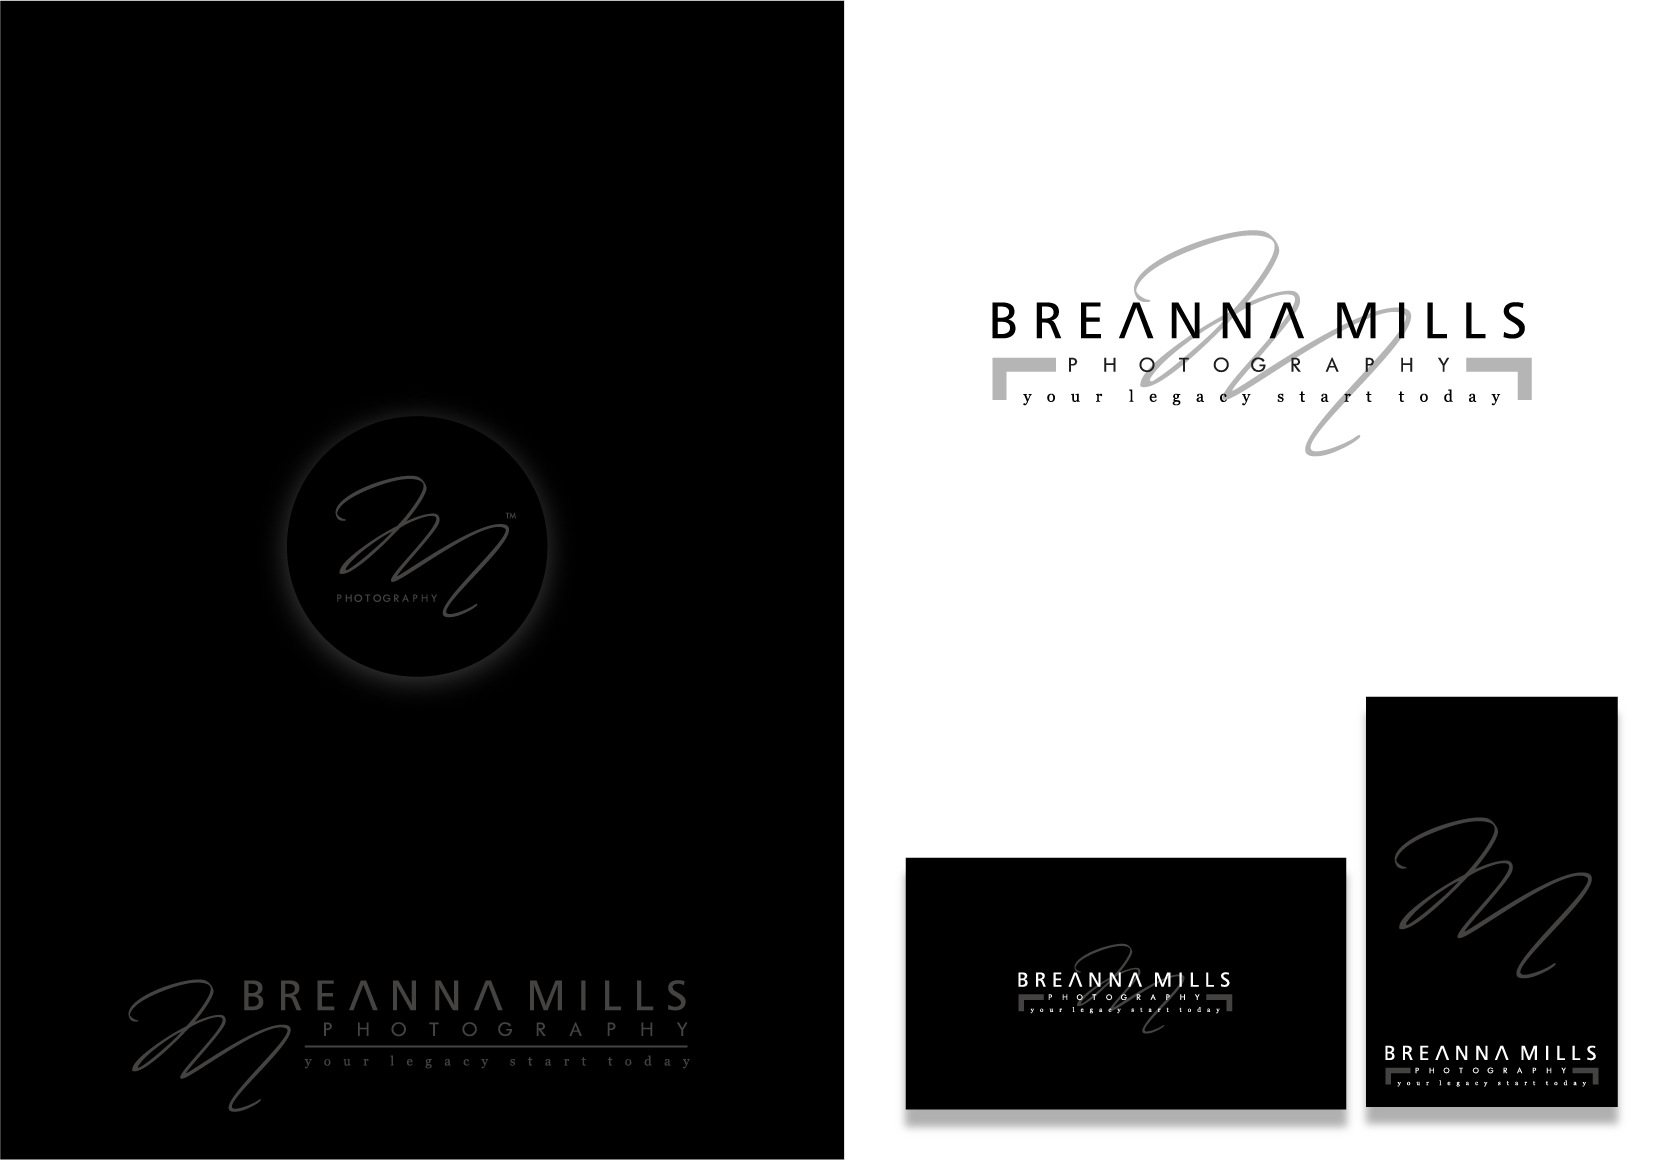 logo for Breanna Mills Photography